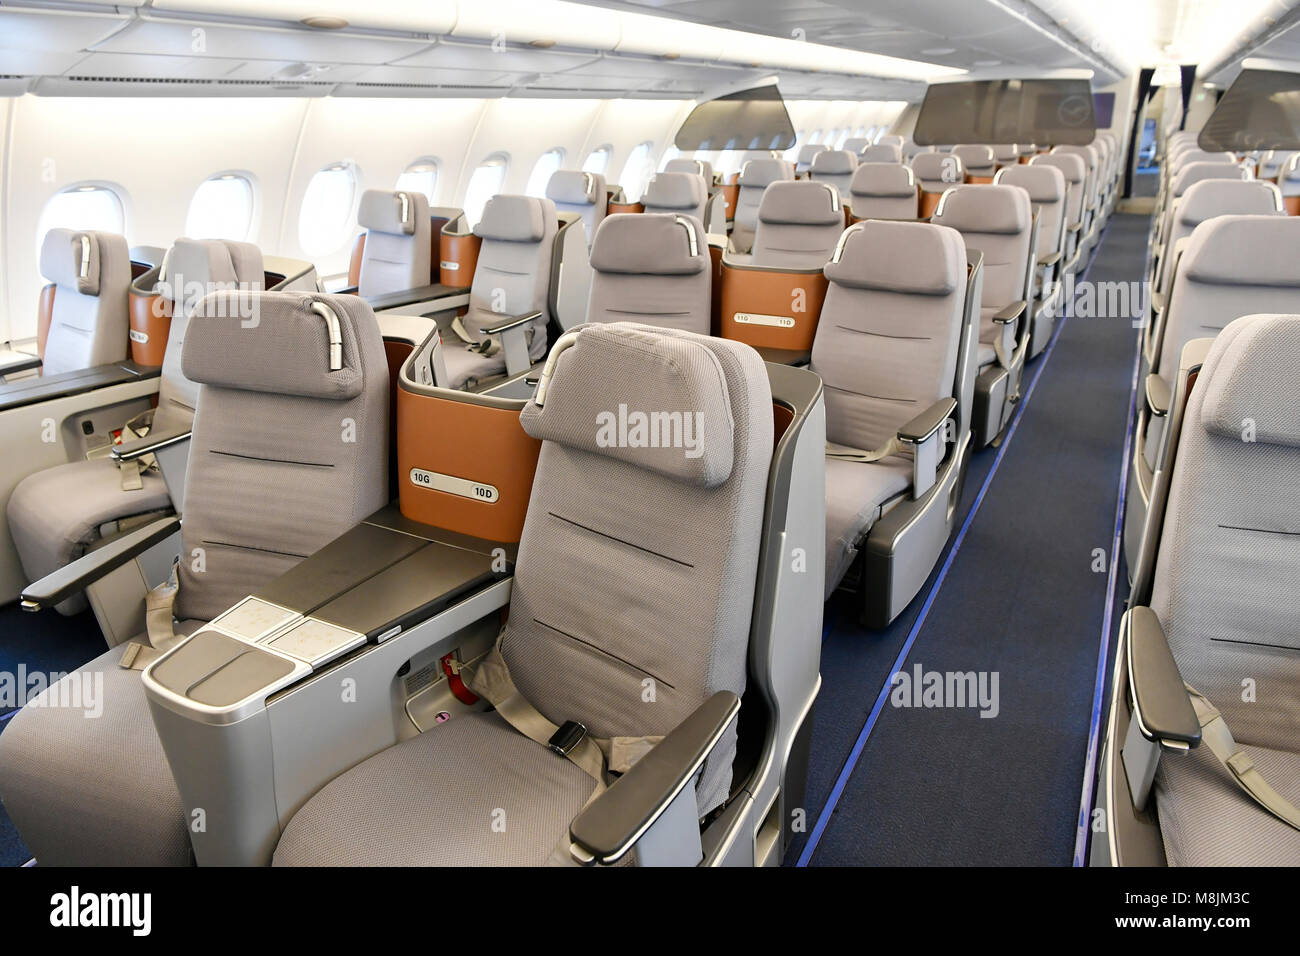 zeigt sitze lufthansa airbus a380 800 notausgang schlafen sitz modern business class. Black Bedroom Furniture Sets. Home Design Ideas